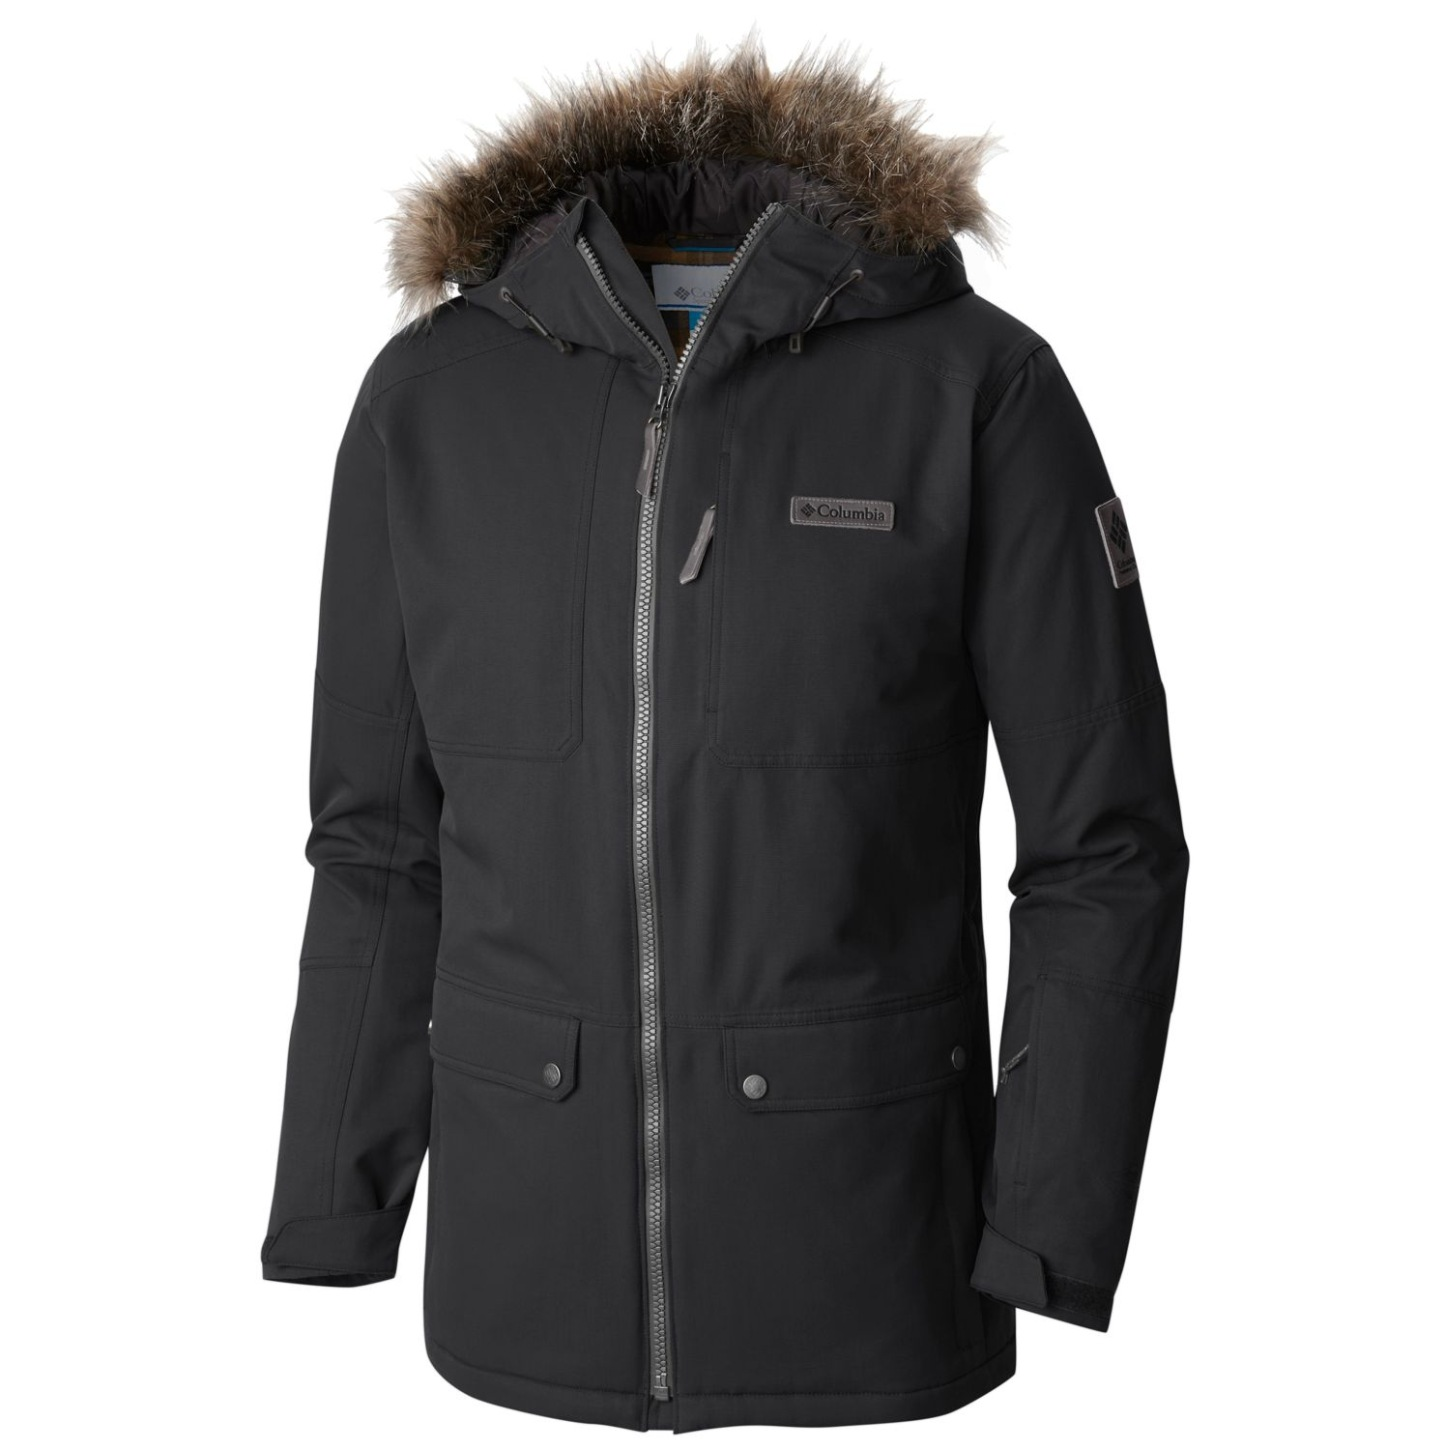 Columbia Men's Catacomb Crest Ski Parka Black-30